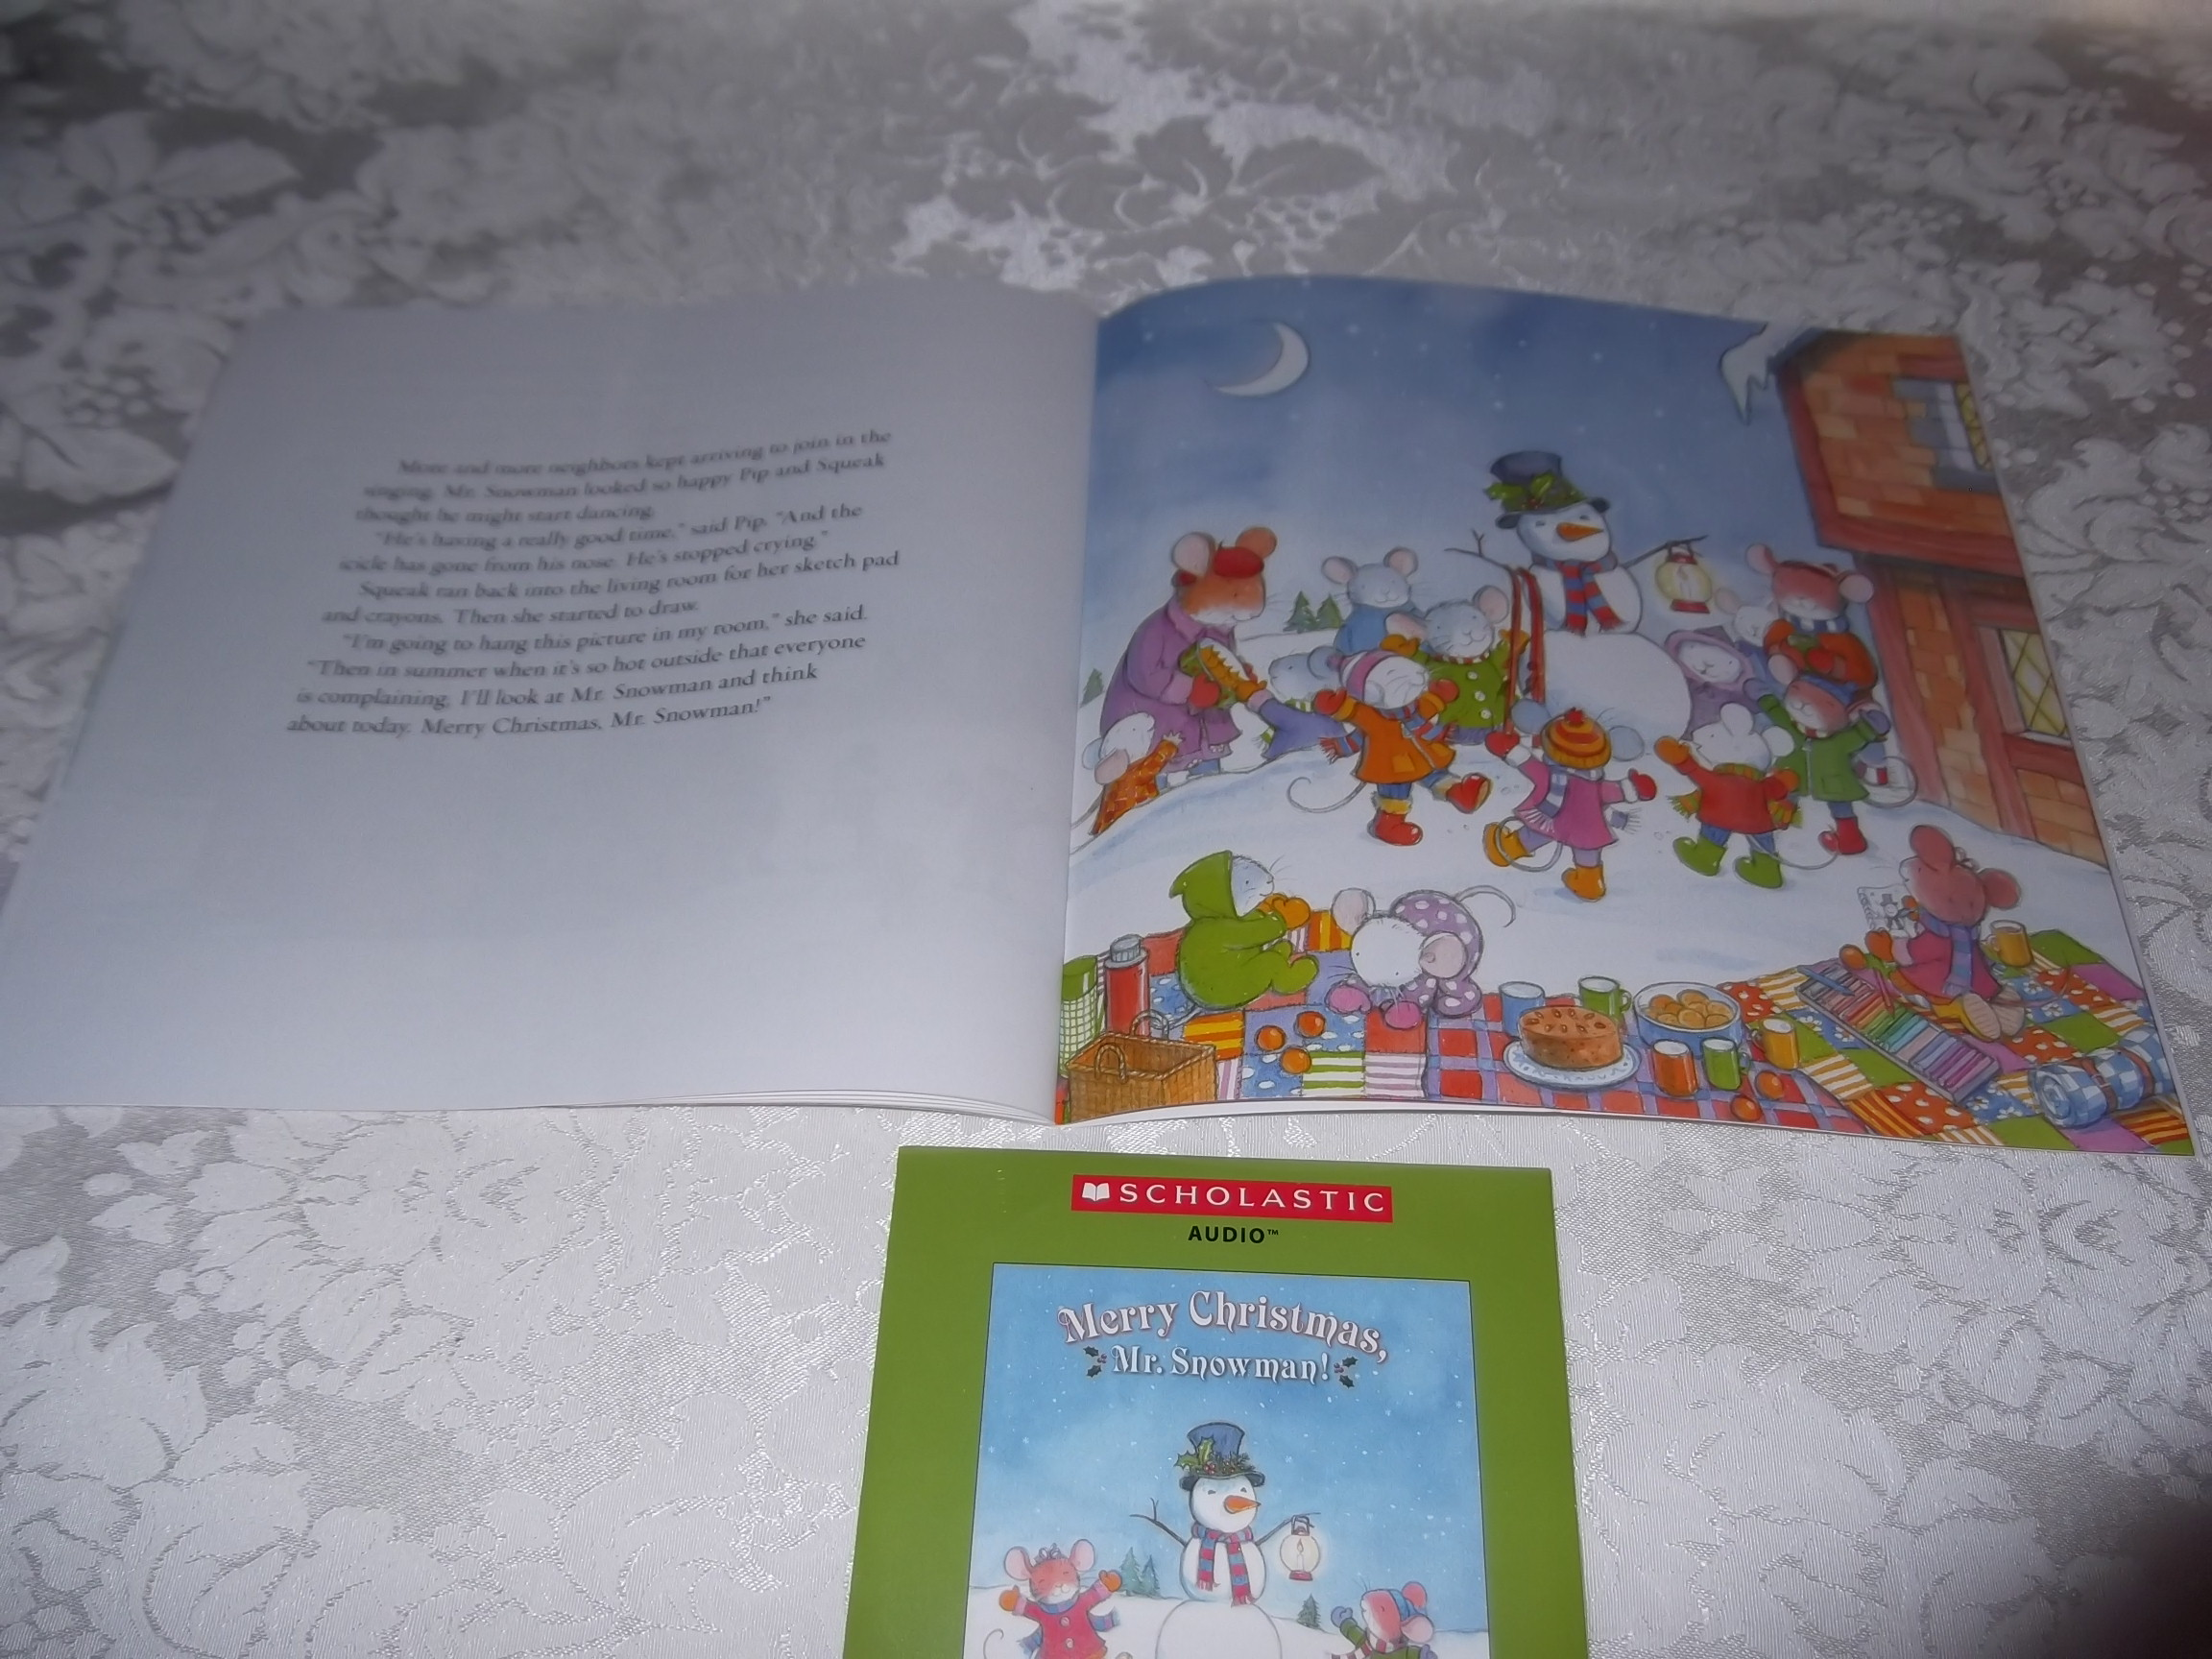 Image 6 of Merry Christmas, Mr. Snowman! Wolfram Hanel Audio CD and SC Brand New